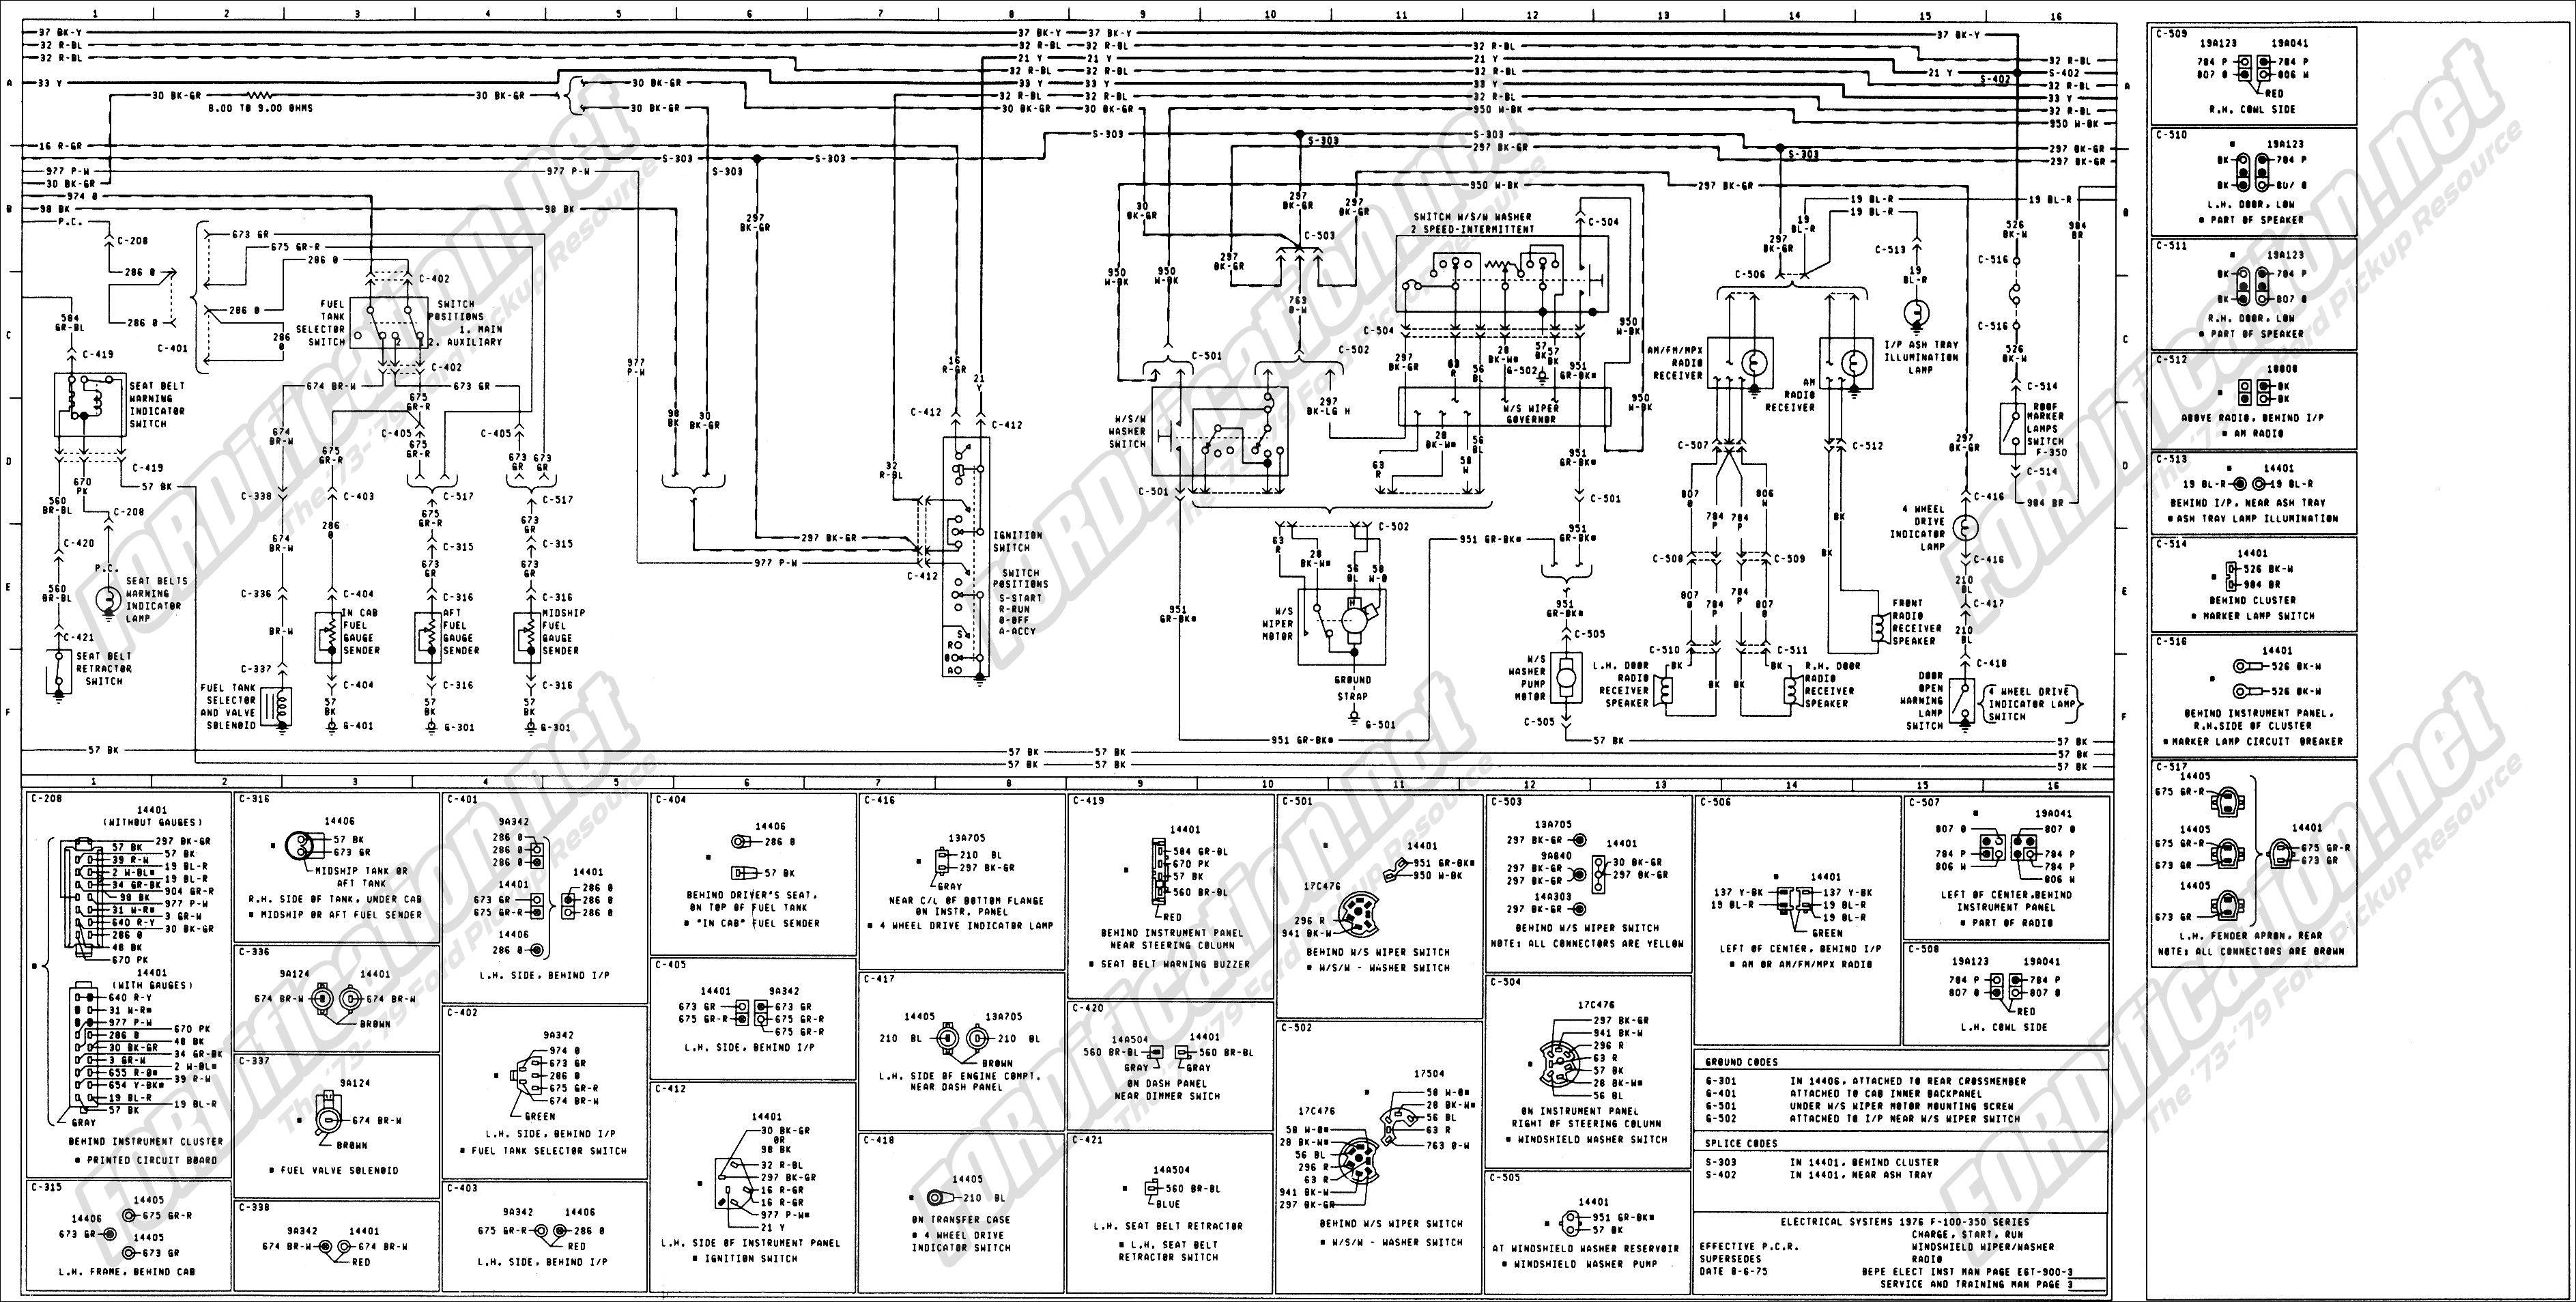 2012 ford f250 upfitter wiring diagram 1993 ford f250 radio wiring diagram